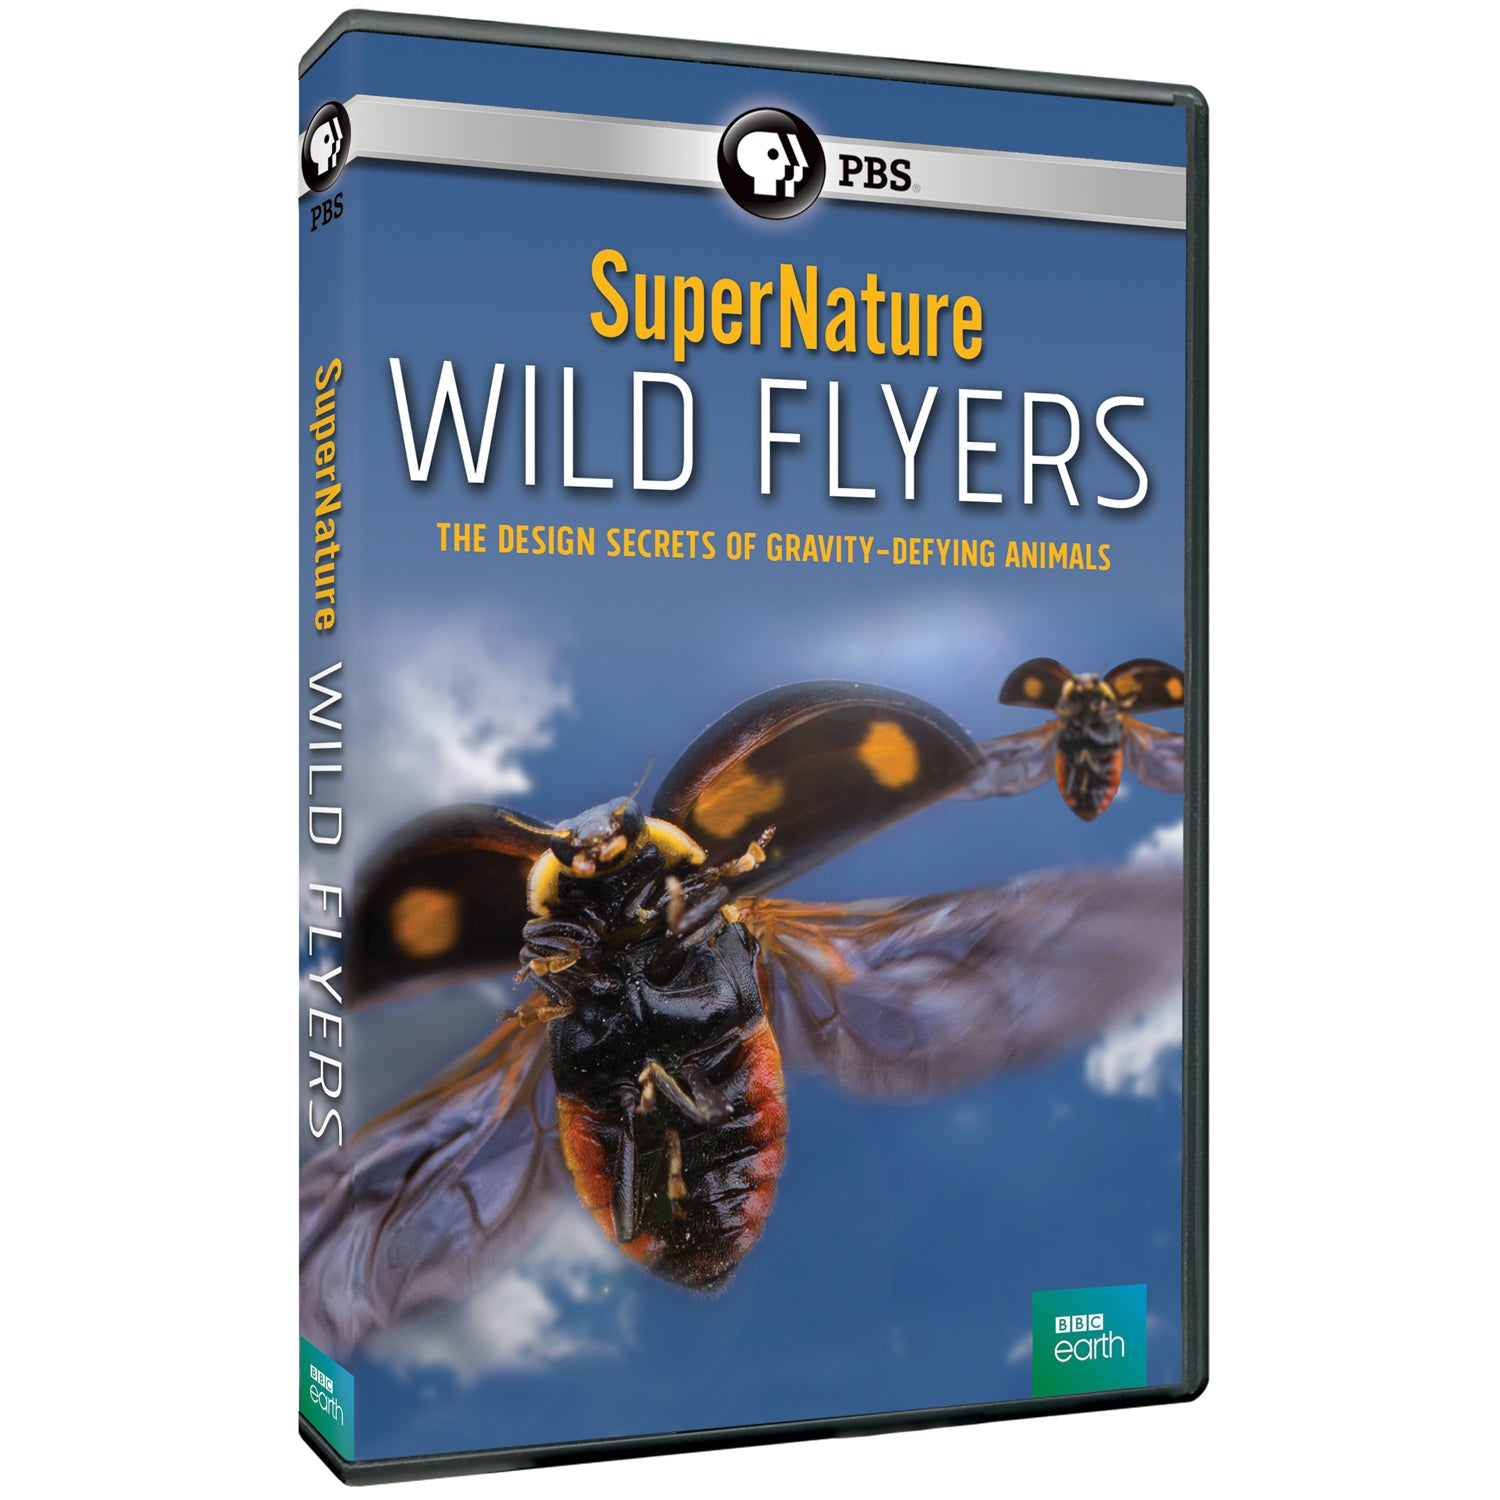 SuperNature - Wild Flyers